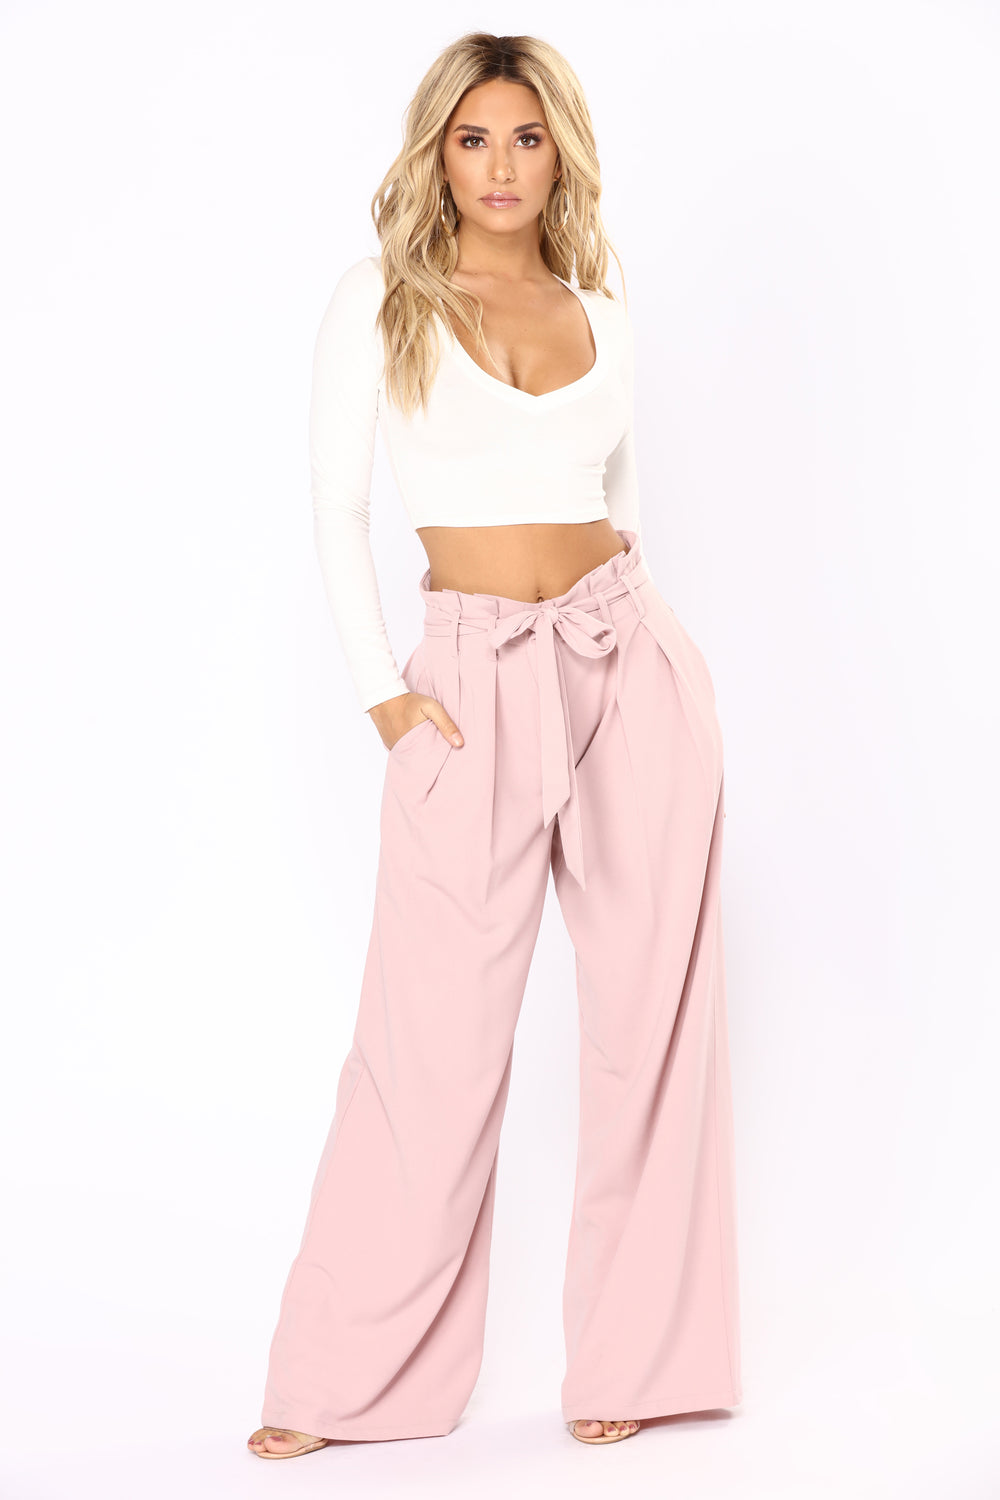 how to make pants looser at the waist